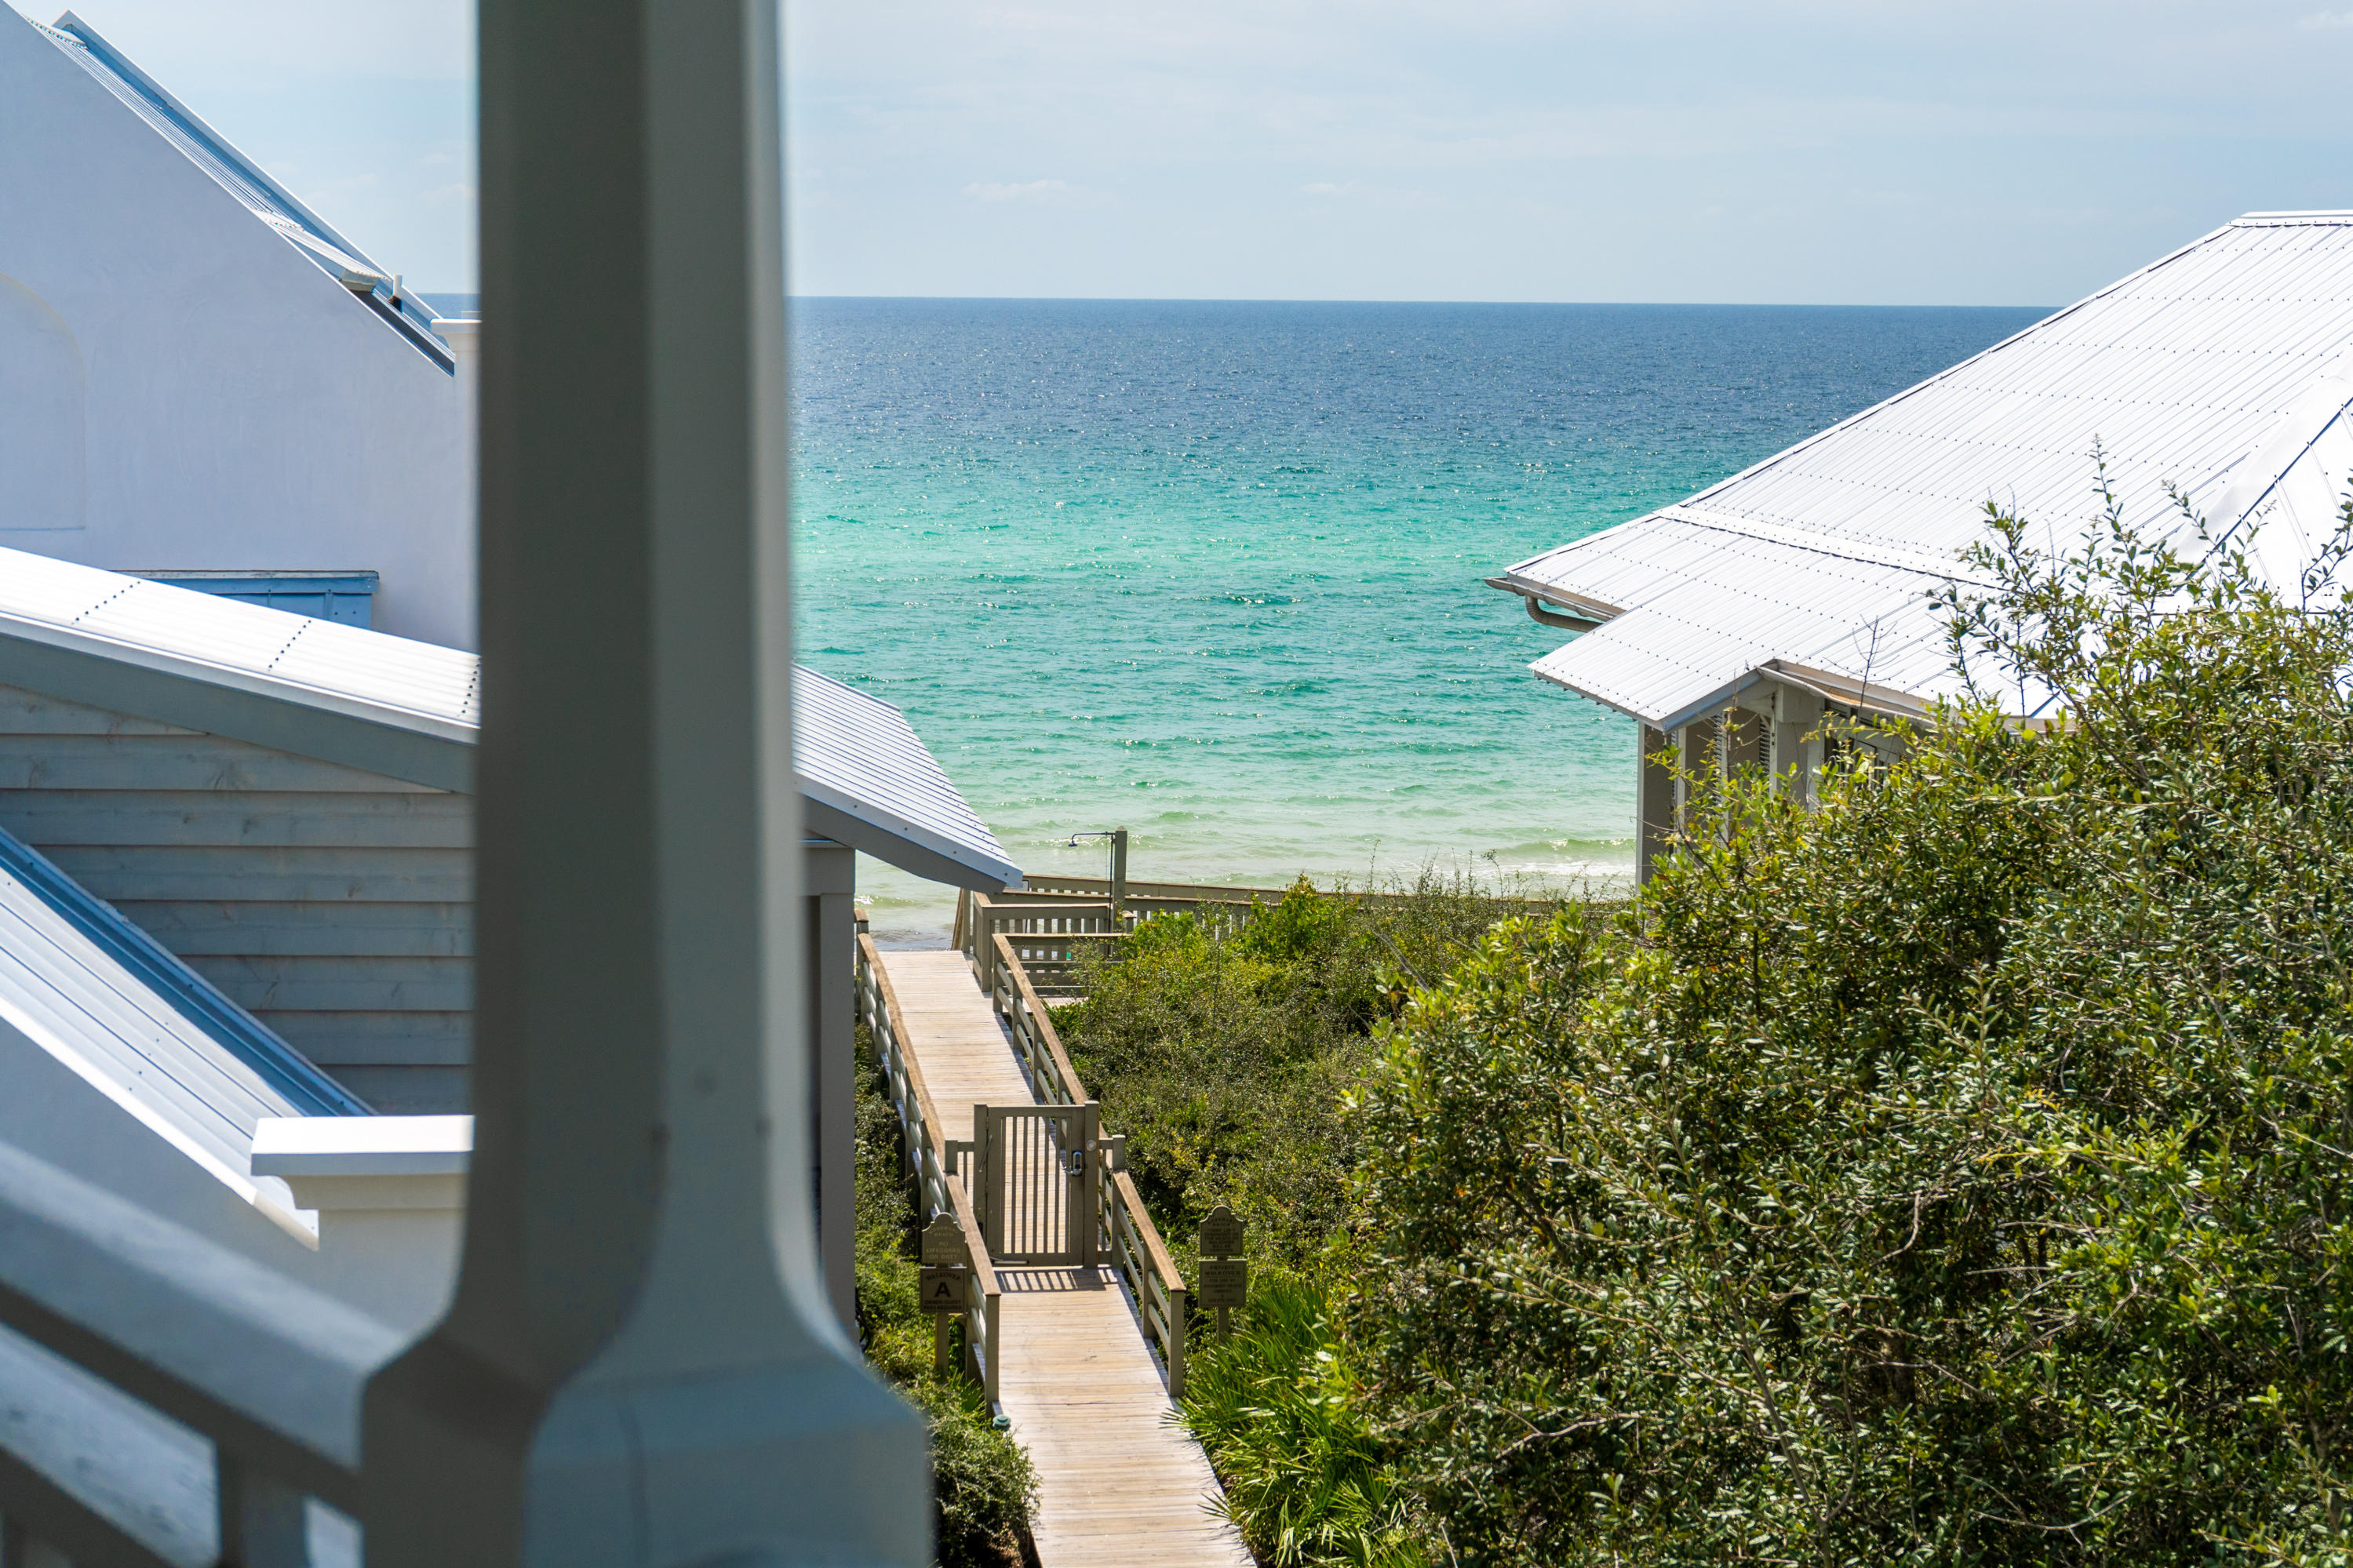 The luxurious 5-Bedroom/5.5-Bath property celebrates Rosemary Beach's indoor-outdoor lifestyle with